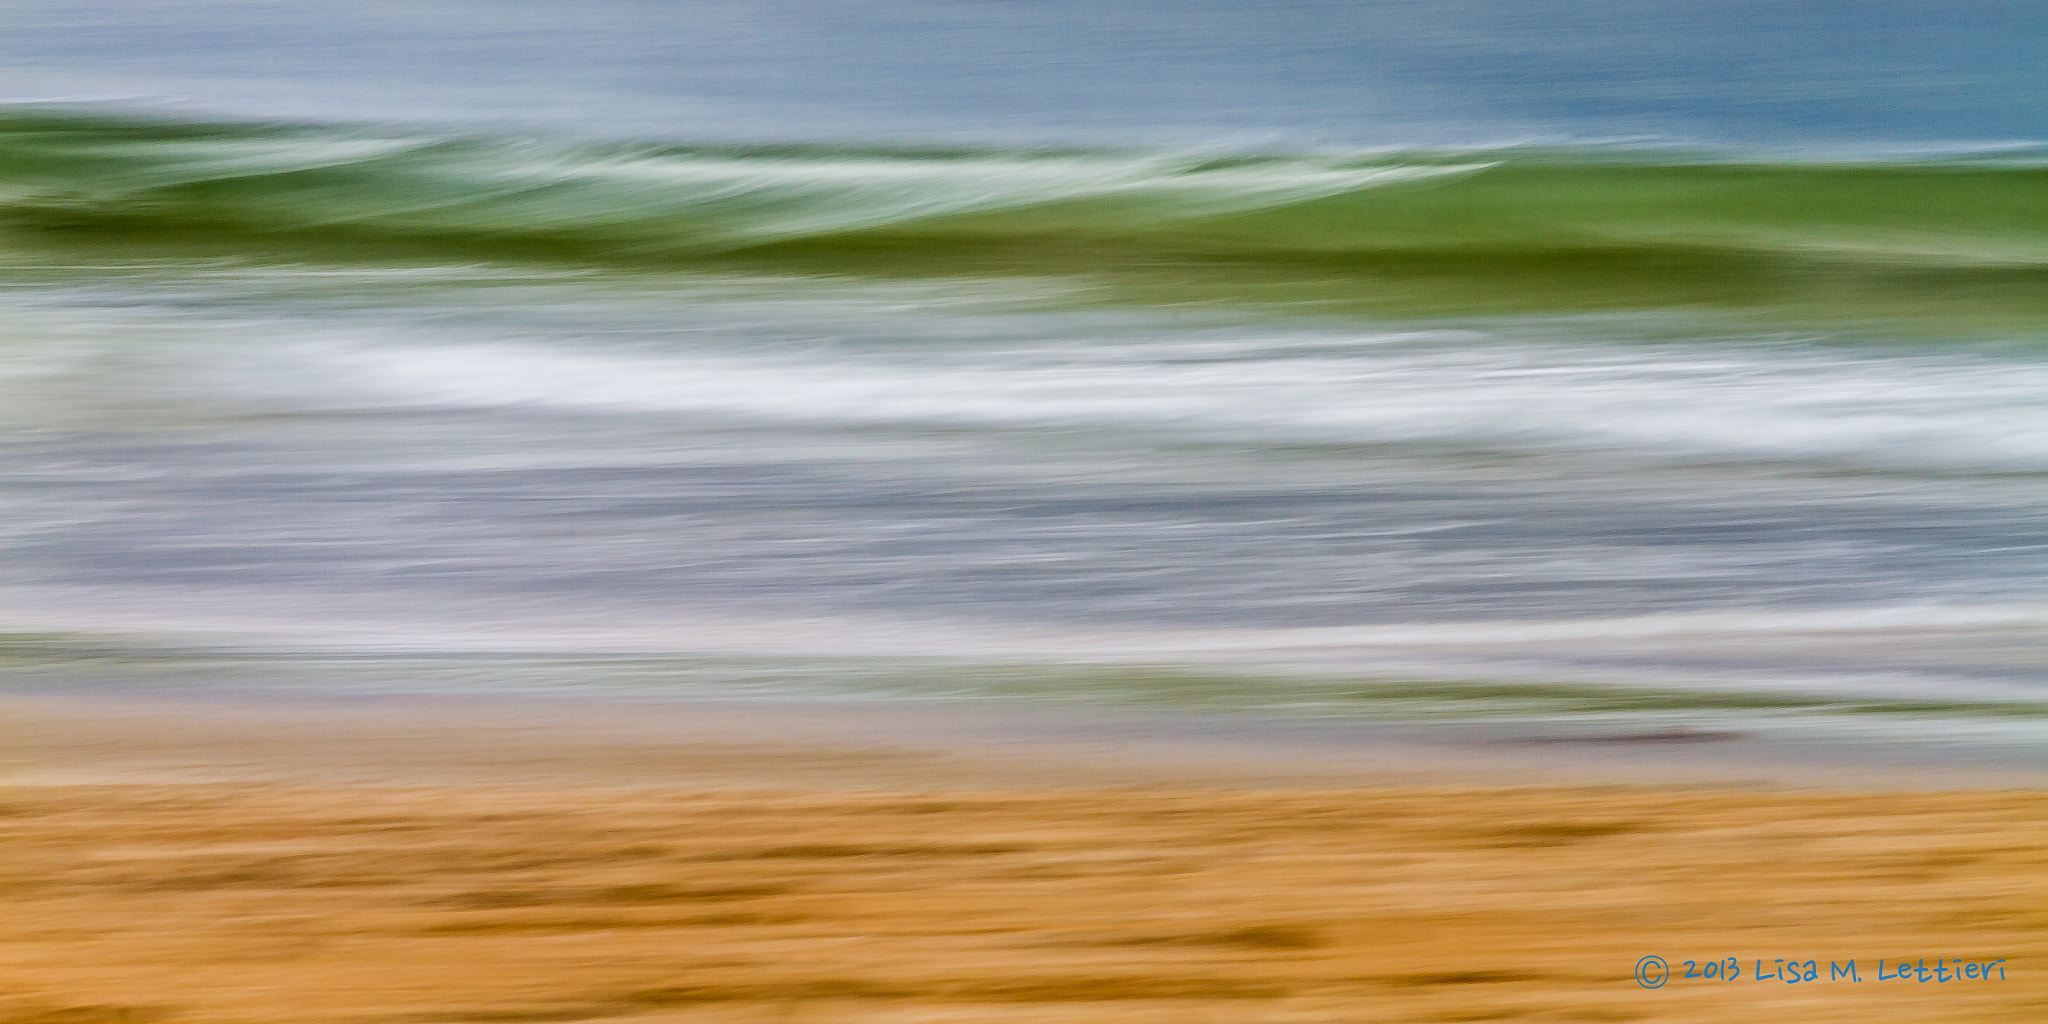 Photograph Panning the Surf by Lisa Lettieri on 500px